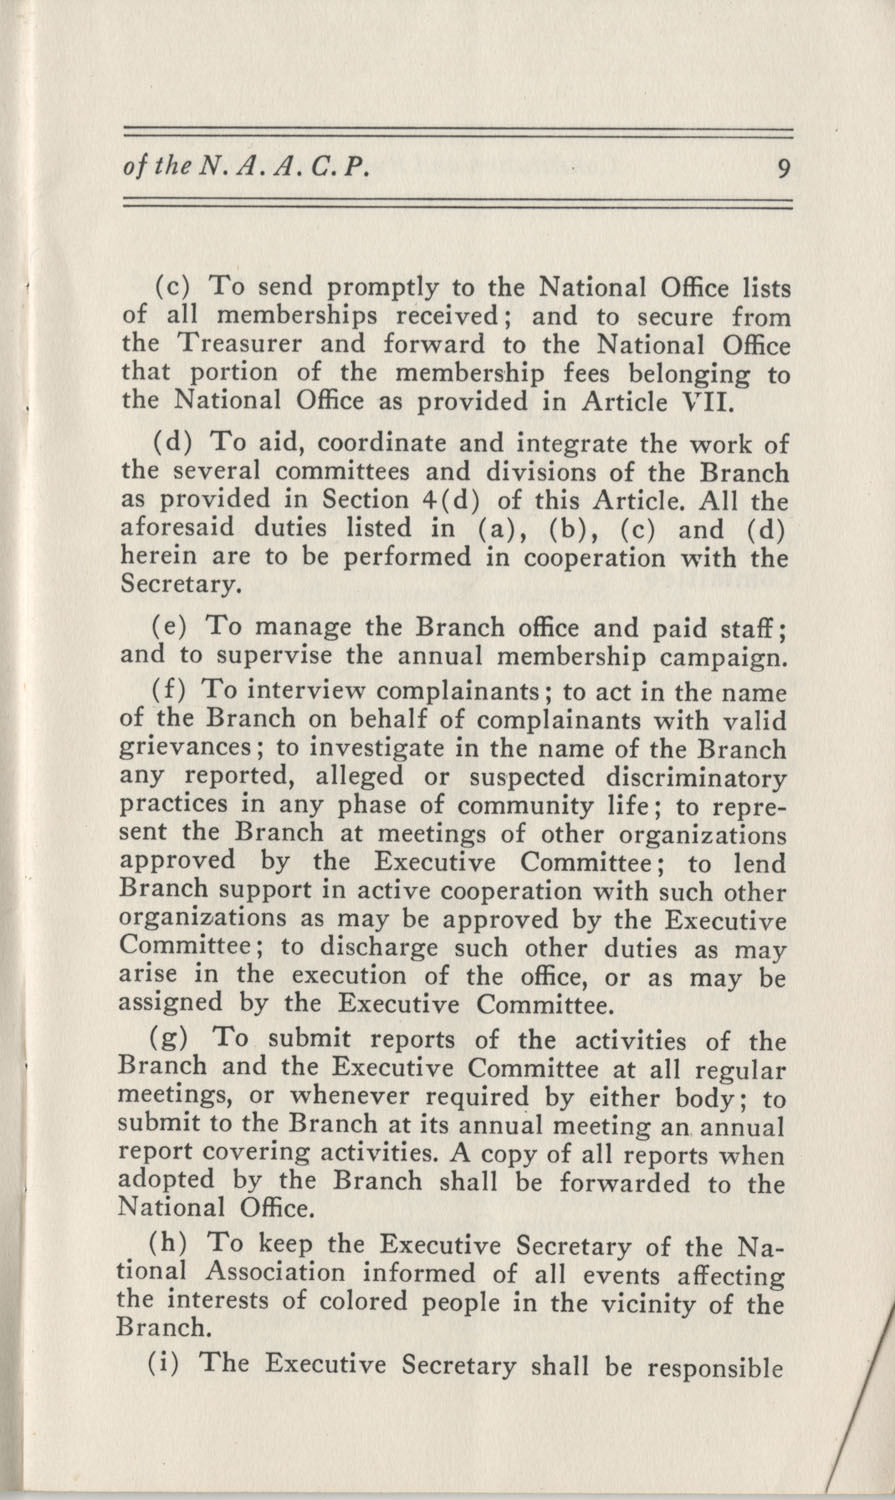 Constitutions and By-Laws, September 1960, Page 9